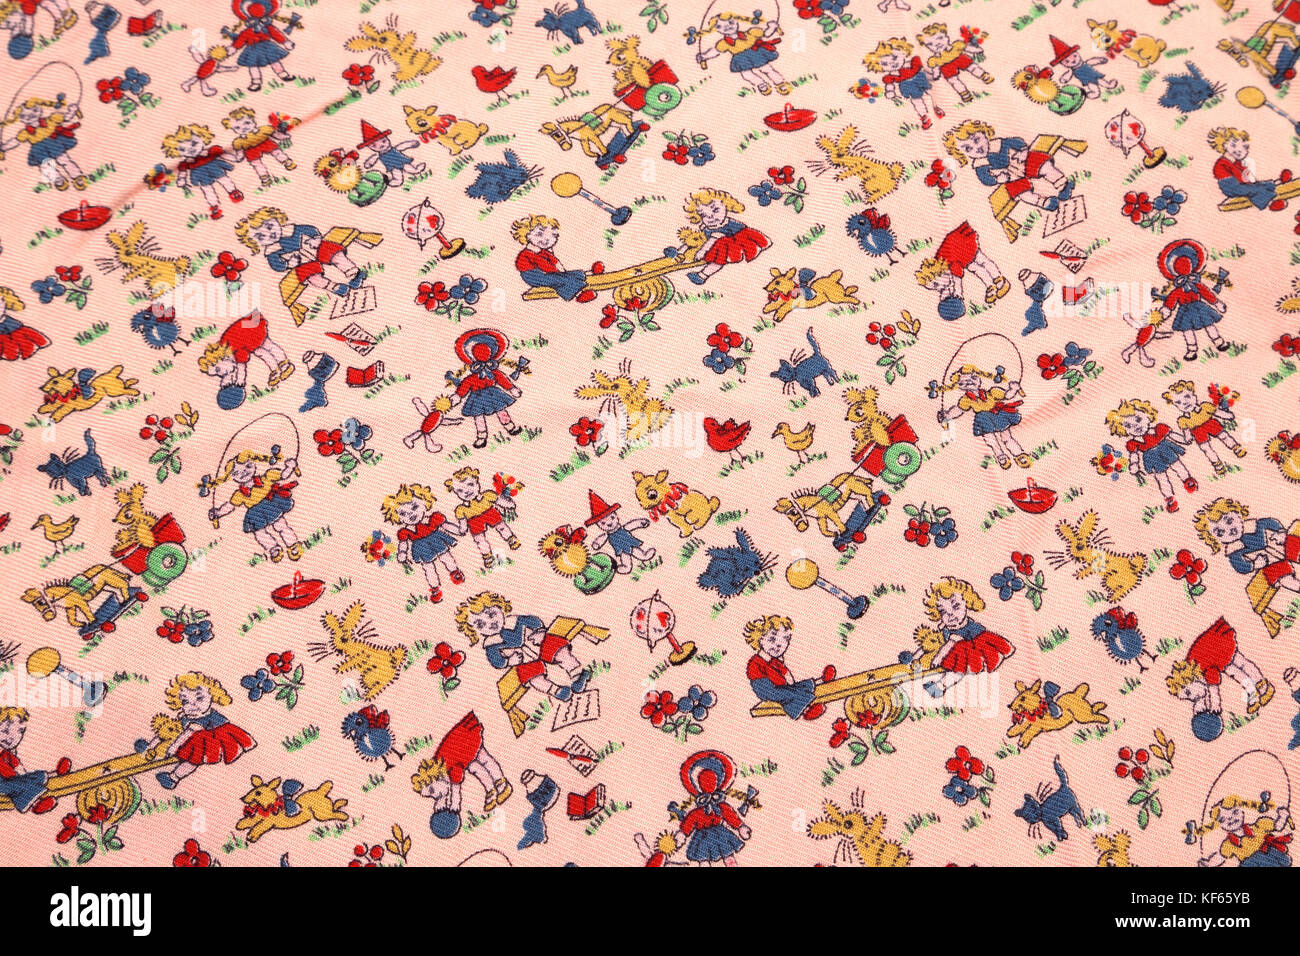 Vintage 1950's Viyella Fabric With Nursery Rhyme Motif - Stock Image